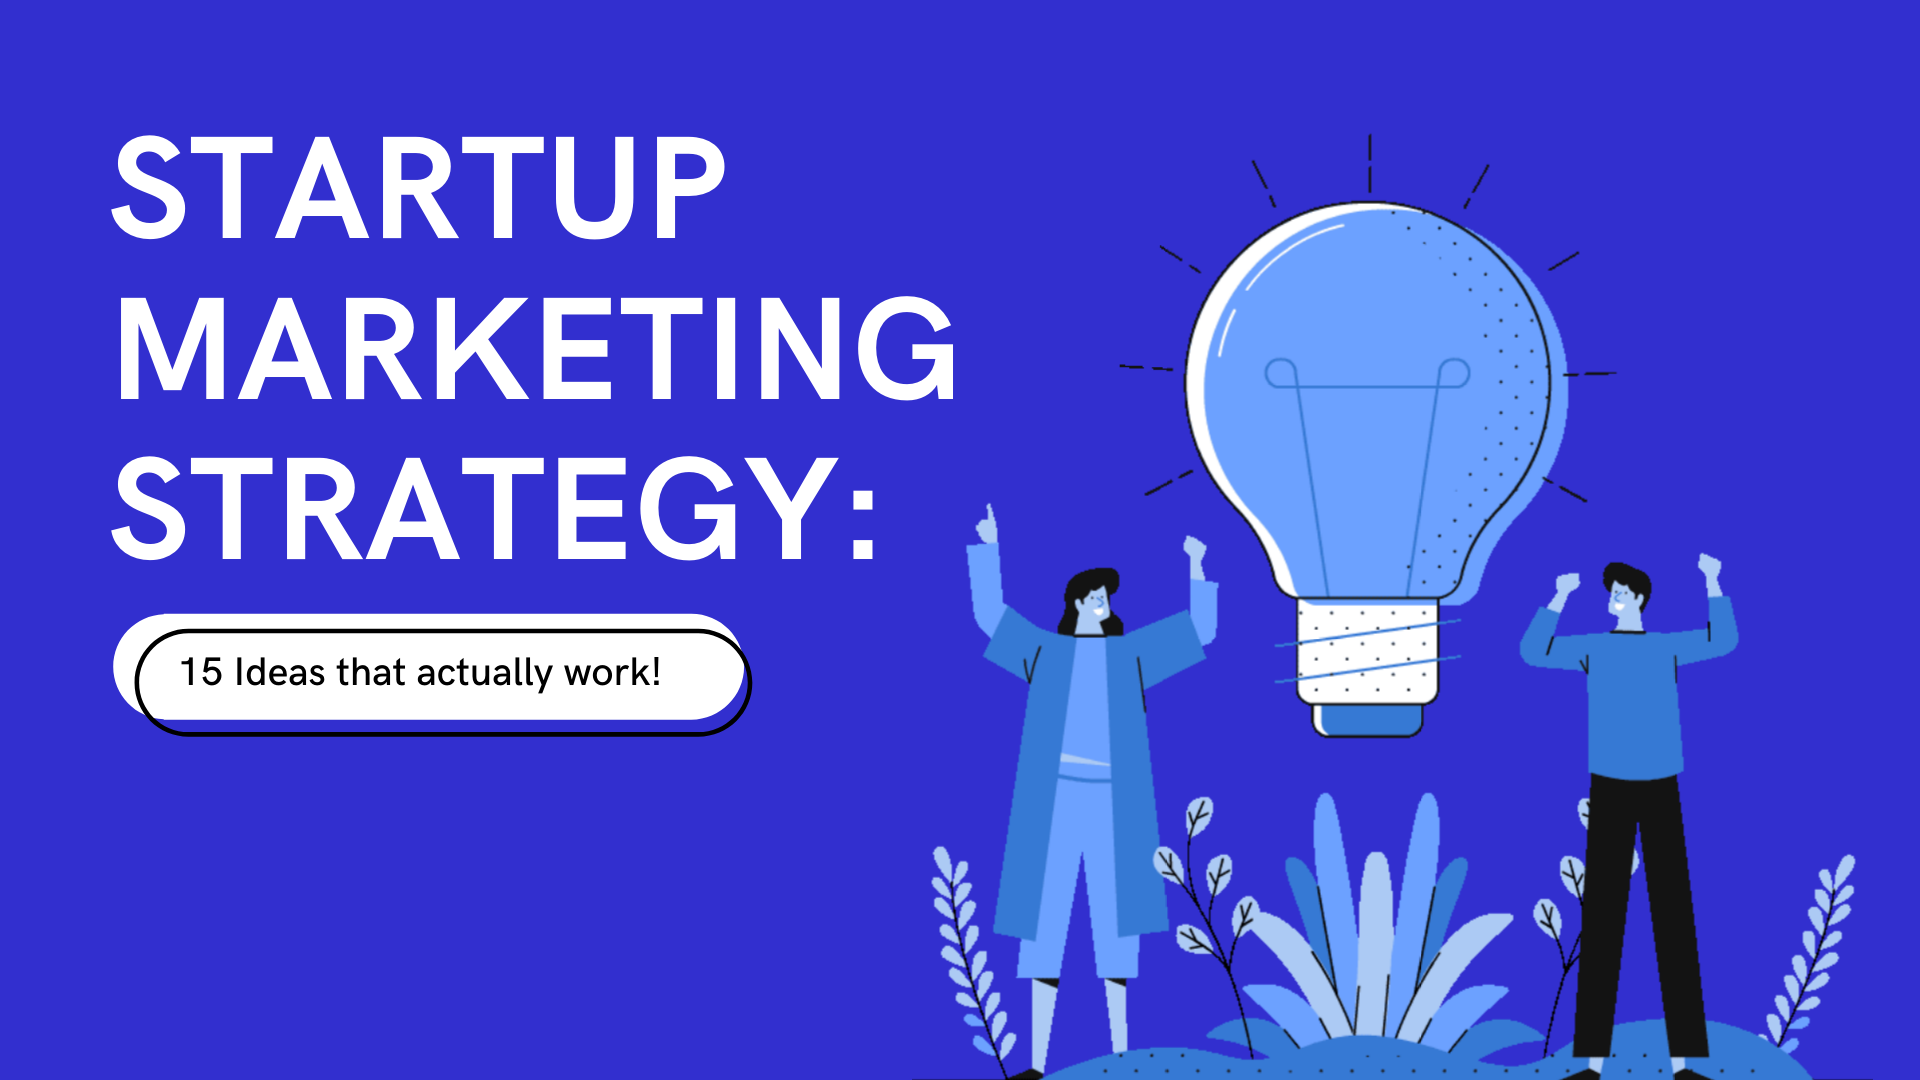 Startup Marketing Strategy Ideas That Work